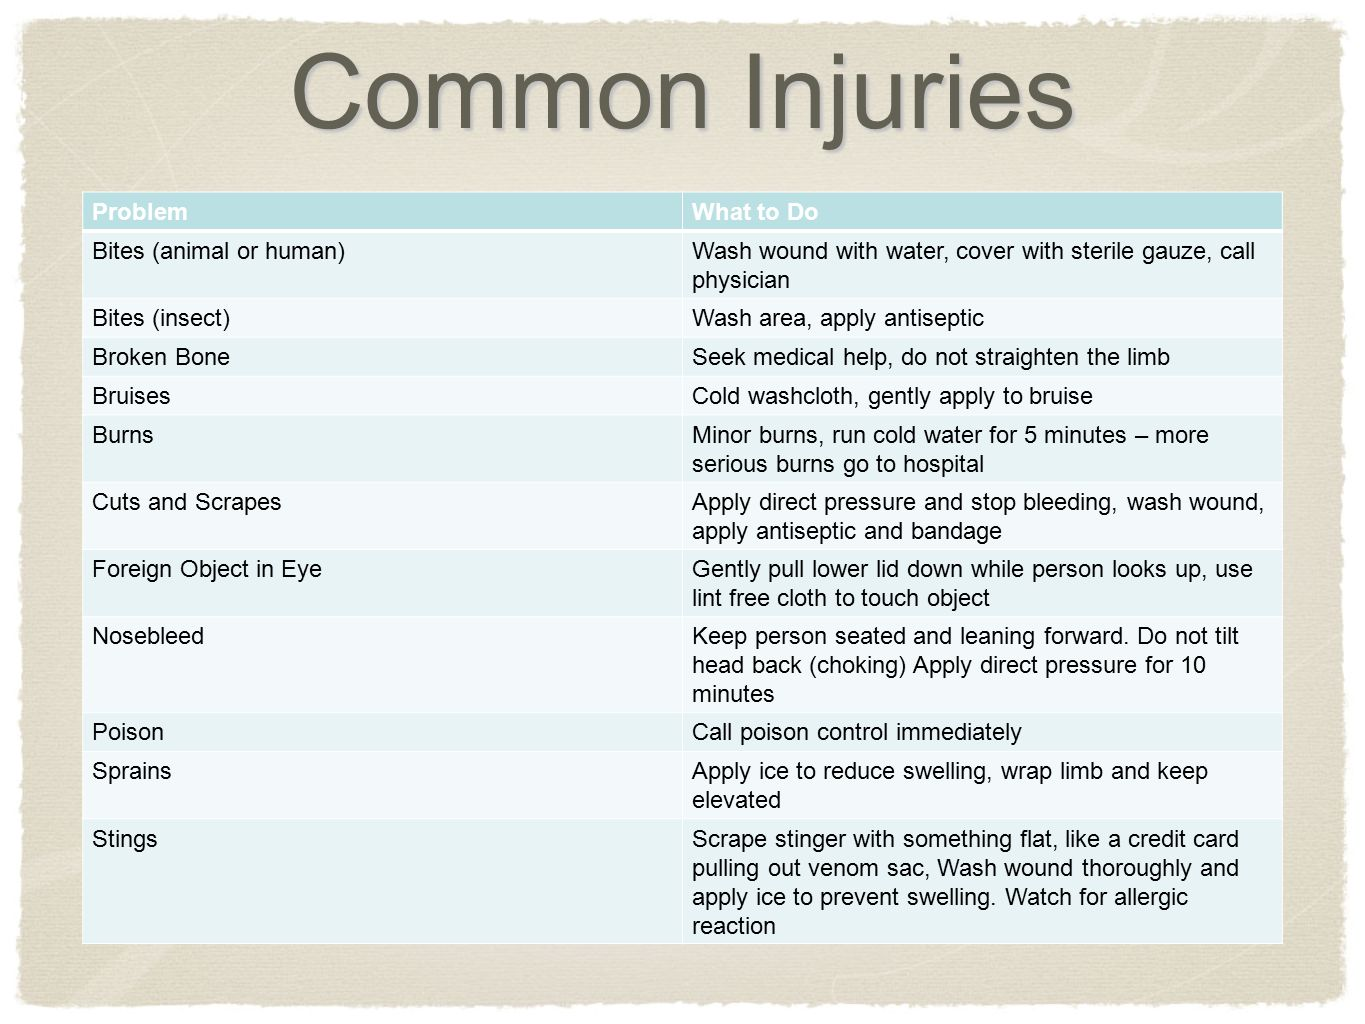 Common Injuries ProblemWhat to Do Bites (animal or human)Wash wound with water, cover with sterile gauze, call physician Bites (insect)Wash area, apply antiseptic Broken BoneSeek medical help, do not straighten the limb BruisesCold washcloth, gently apply to bruise BurnsMinor burns, run cold water for 5 minutes – more serious burns go to hospital Cuts and ScrapesApply direct pressure and stop bleeding, wash wound, apply antiseptic and bandage Foreign Object in EyeGently pull lower lid down while person looks up, use lint free cloth to touch object NosebleedKeep person seated and leaning forward.